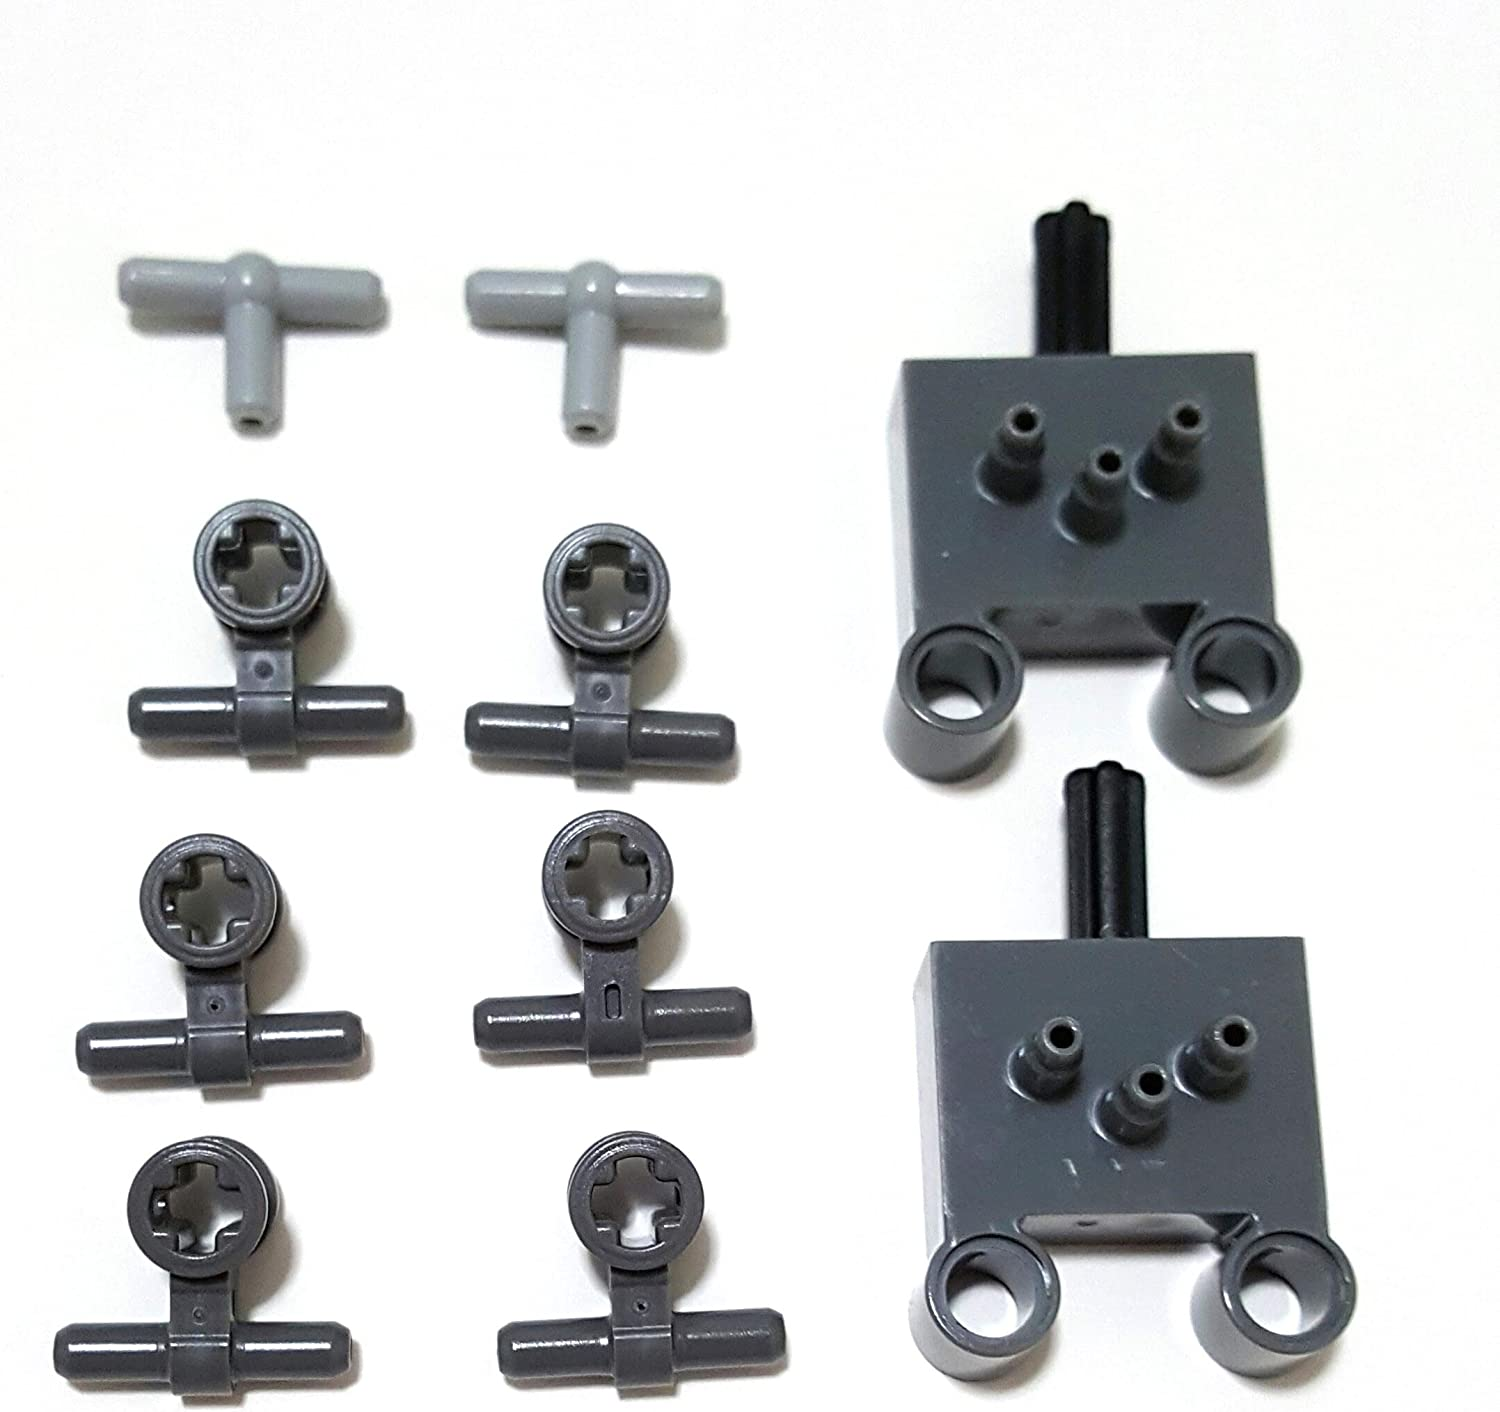 LEGO parts: Technic pneumactic 2 way valve and connector kit (10 pieces)